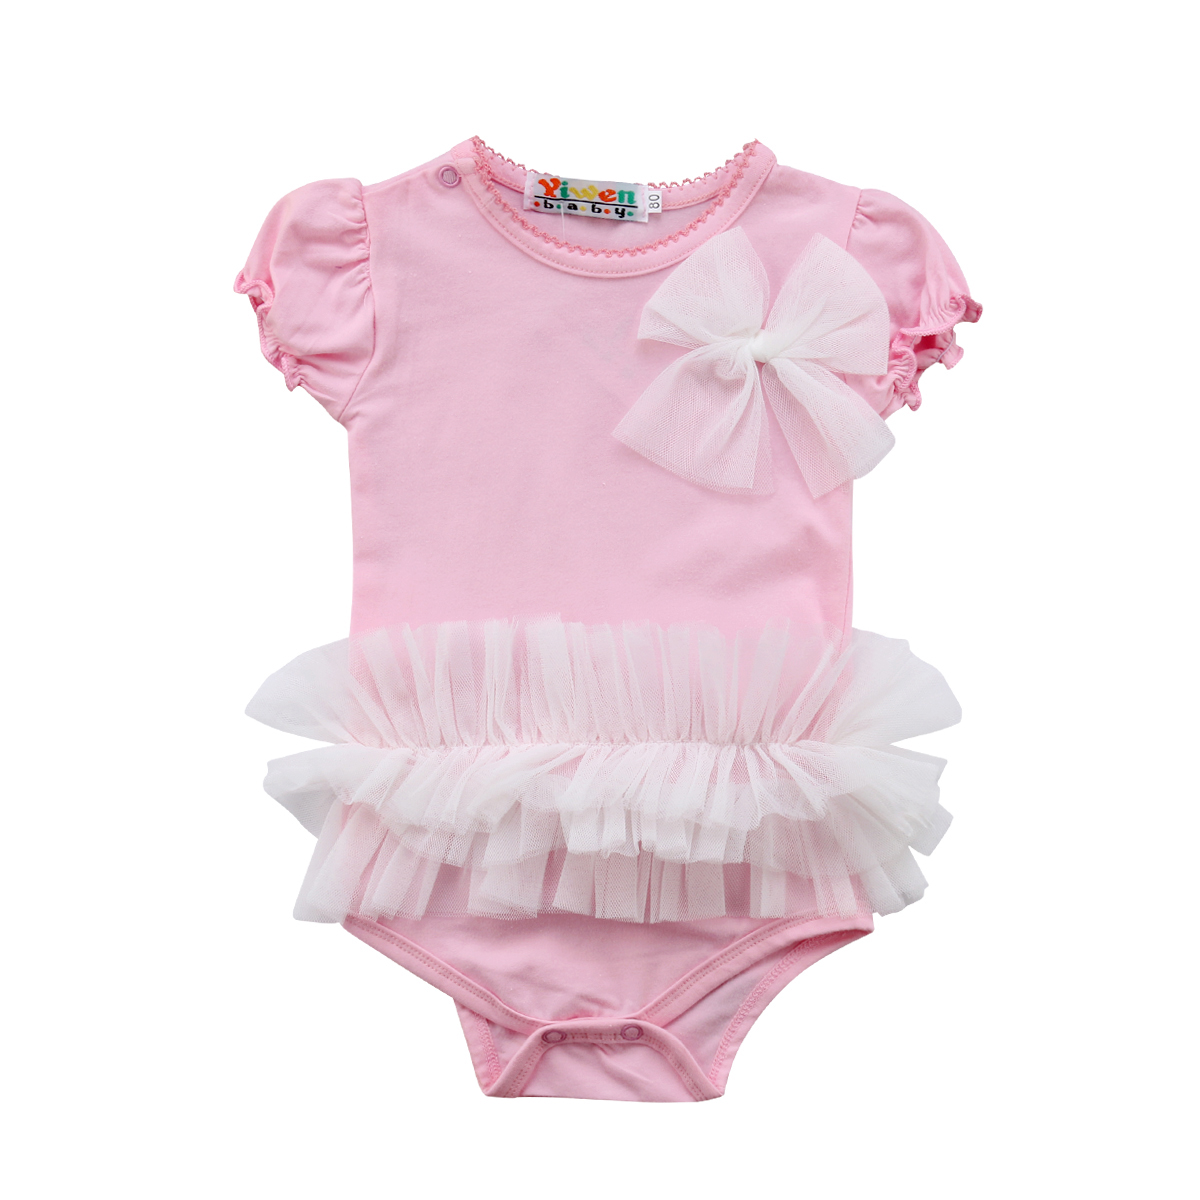 2018 Toddler Kids Baby Girl Pink Lace Tulle Short Sleeves